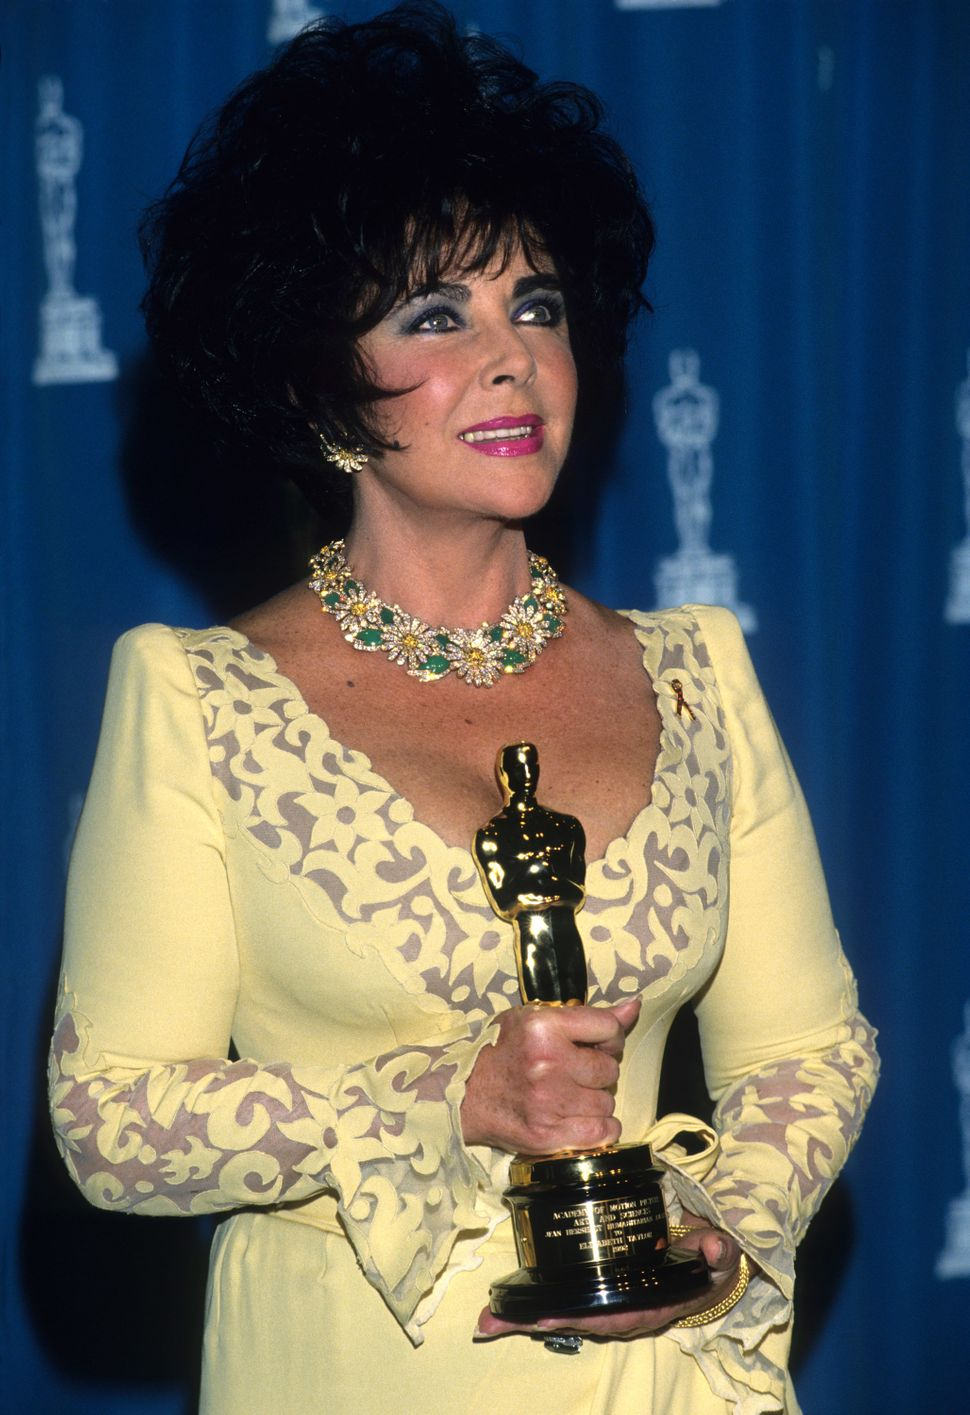 Elizabeth Taylor poses at the 65th annual Academy Awards in 1993.